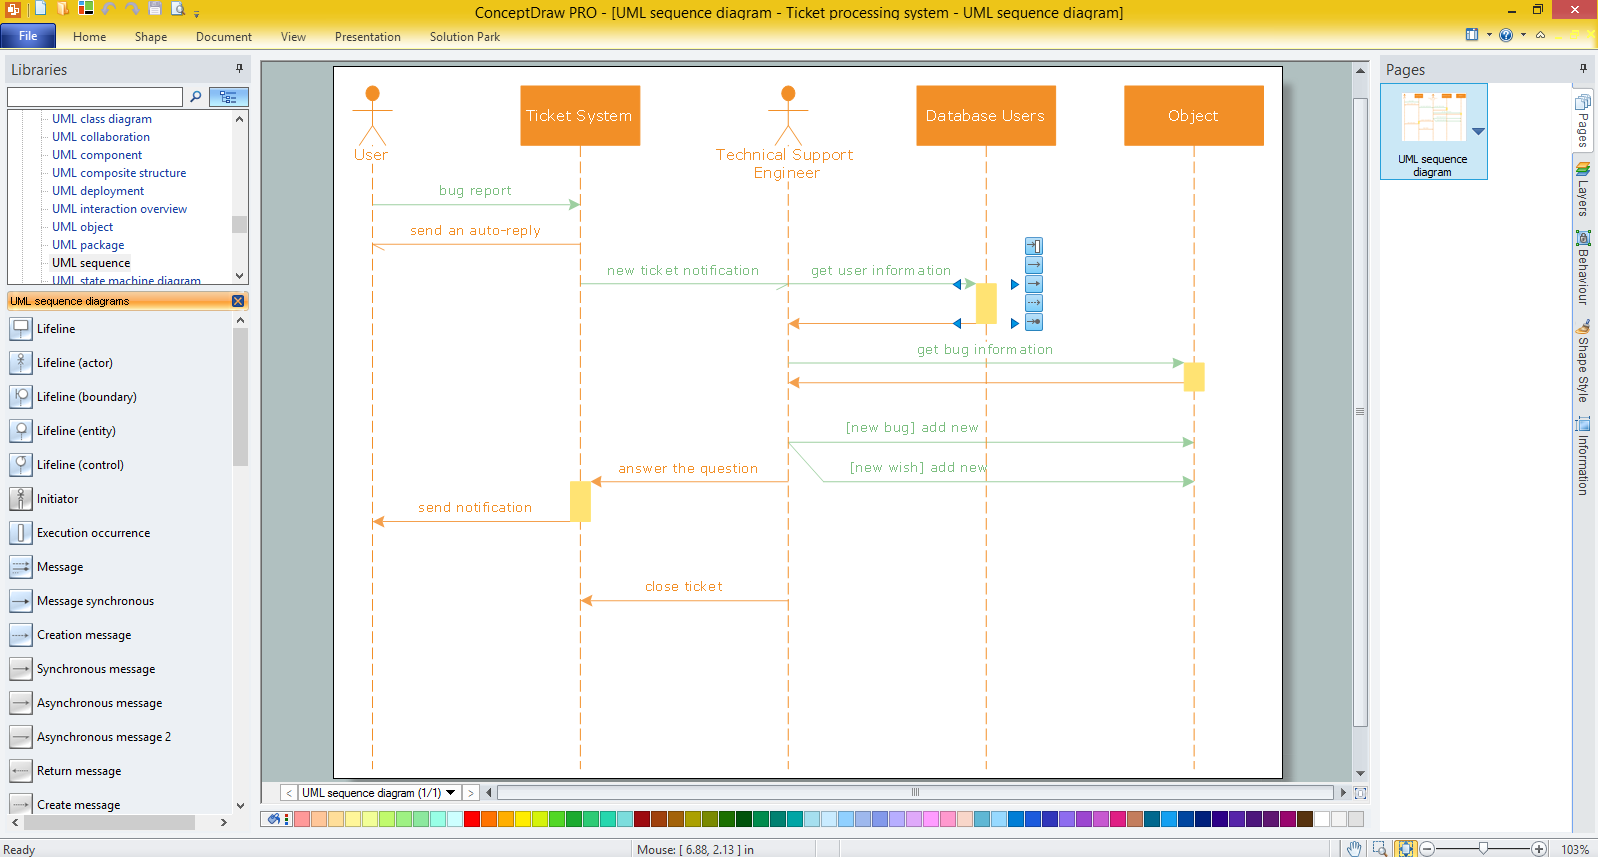 Designelements umlsequenceg 1200810 uml sequence diagram designelements umlsequenceg 1200810 uml sequence diagram pinterest sequence diagram diagram design and class diagram ccuart Choice Image